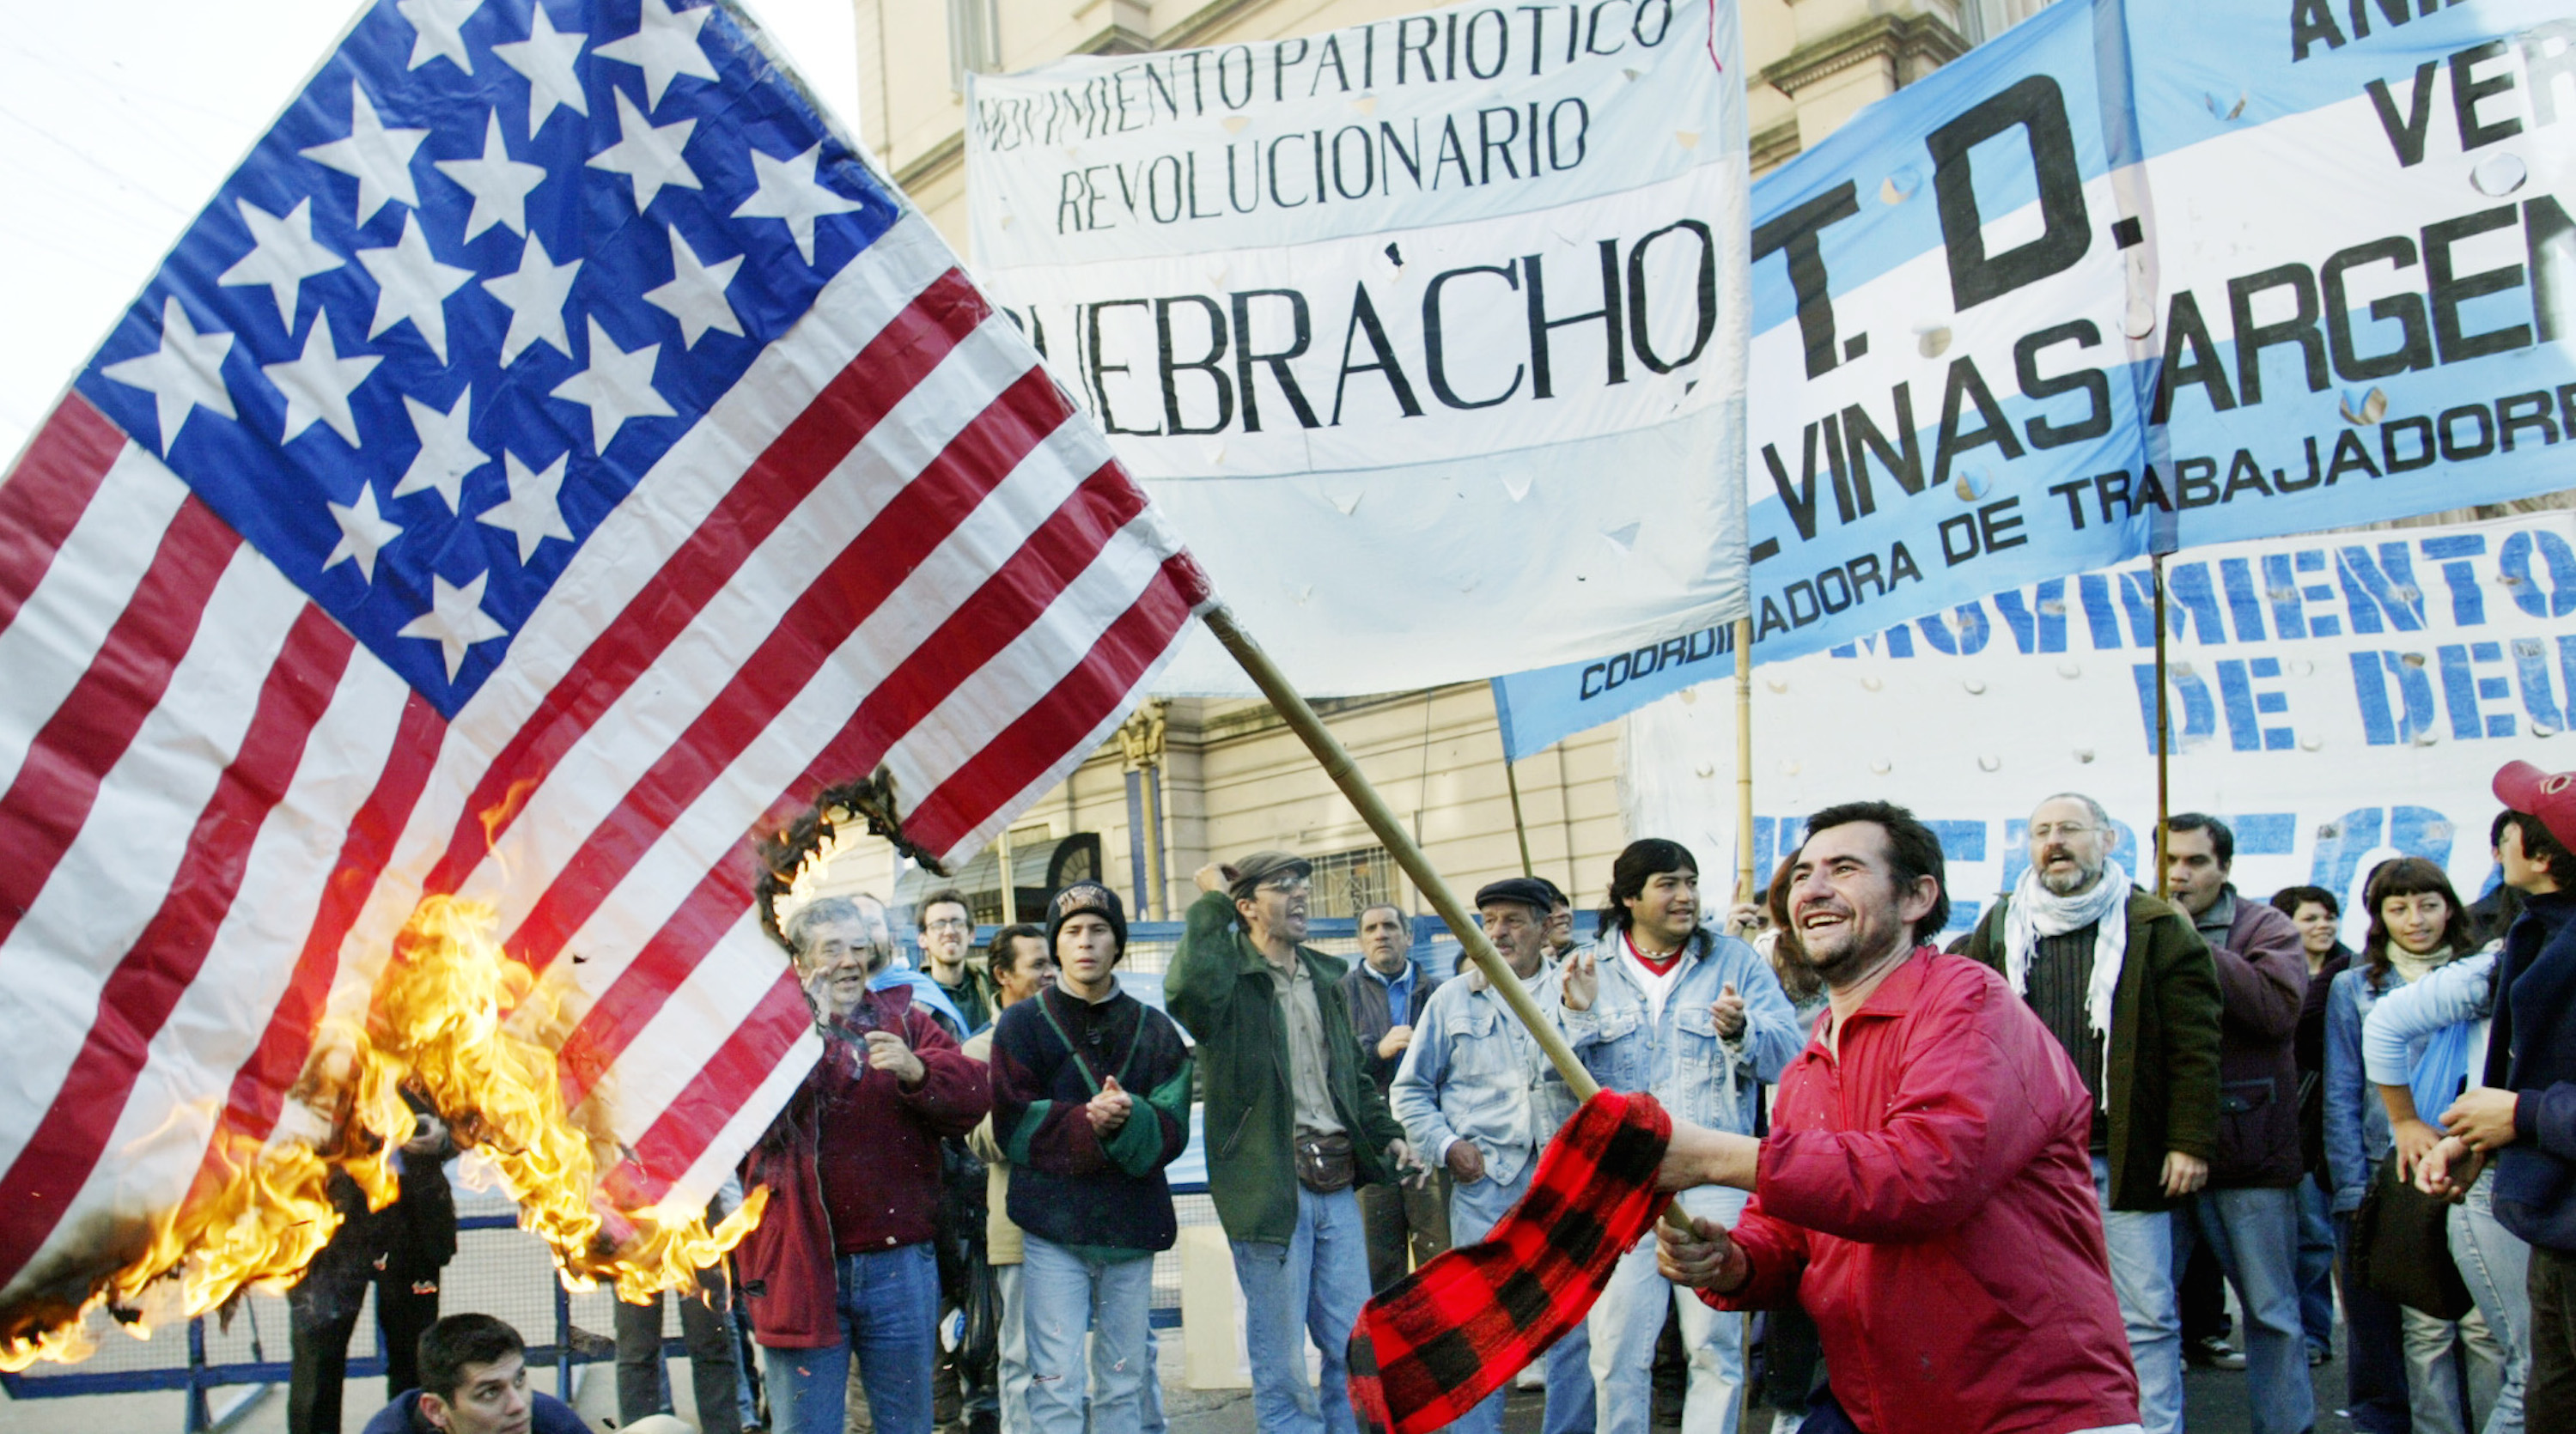 DEMONSTRATORS BURN A US FLAG PROTESTING AGAINST IMF VISIT TO ARGENTINA.